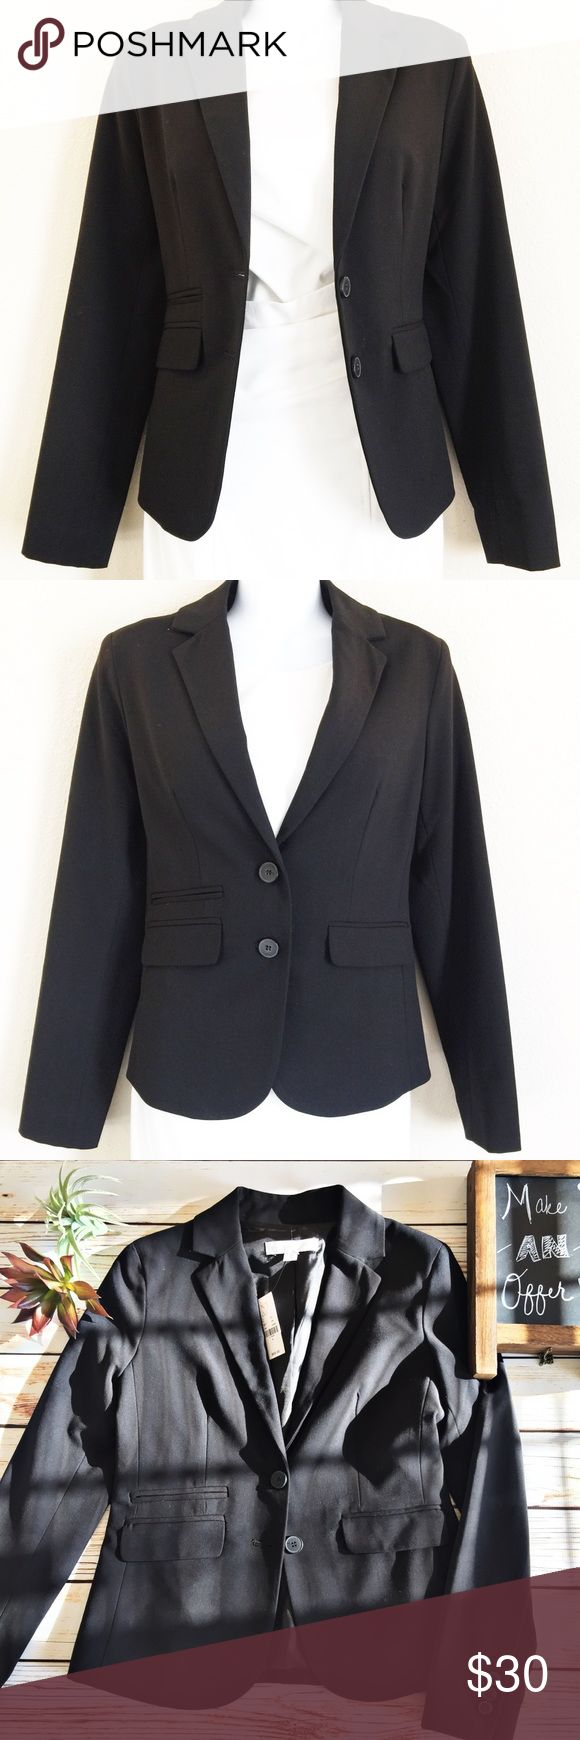 Black New York and Company Blazer NWT!!! Brand new with tags! The blazer stretches, so you can move around with ease! New York & Company Jackets & Coats Blazers